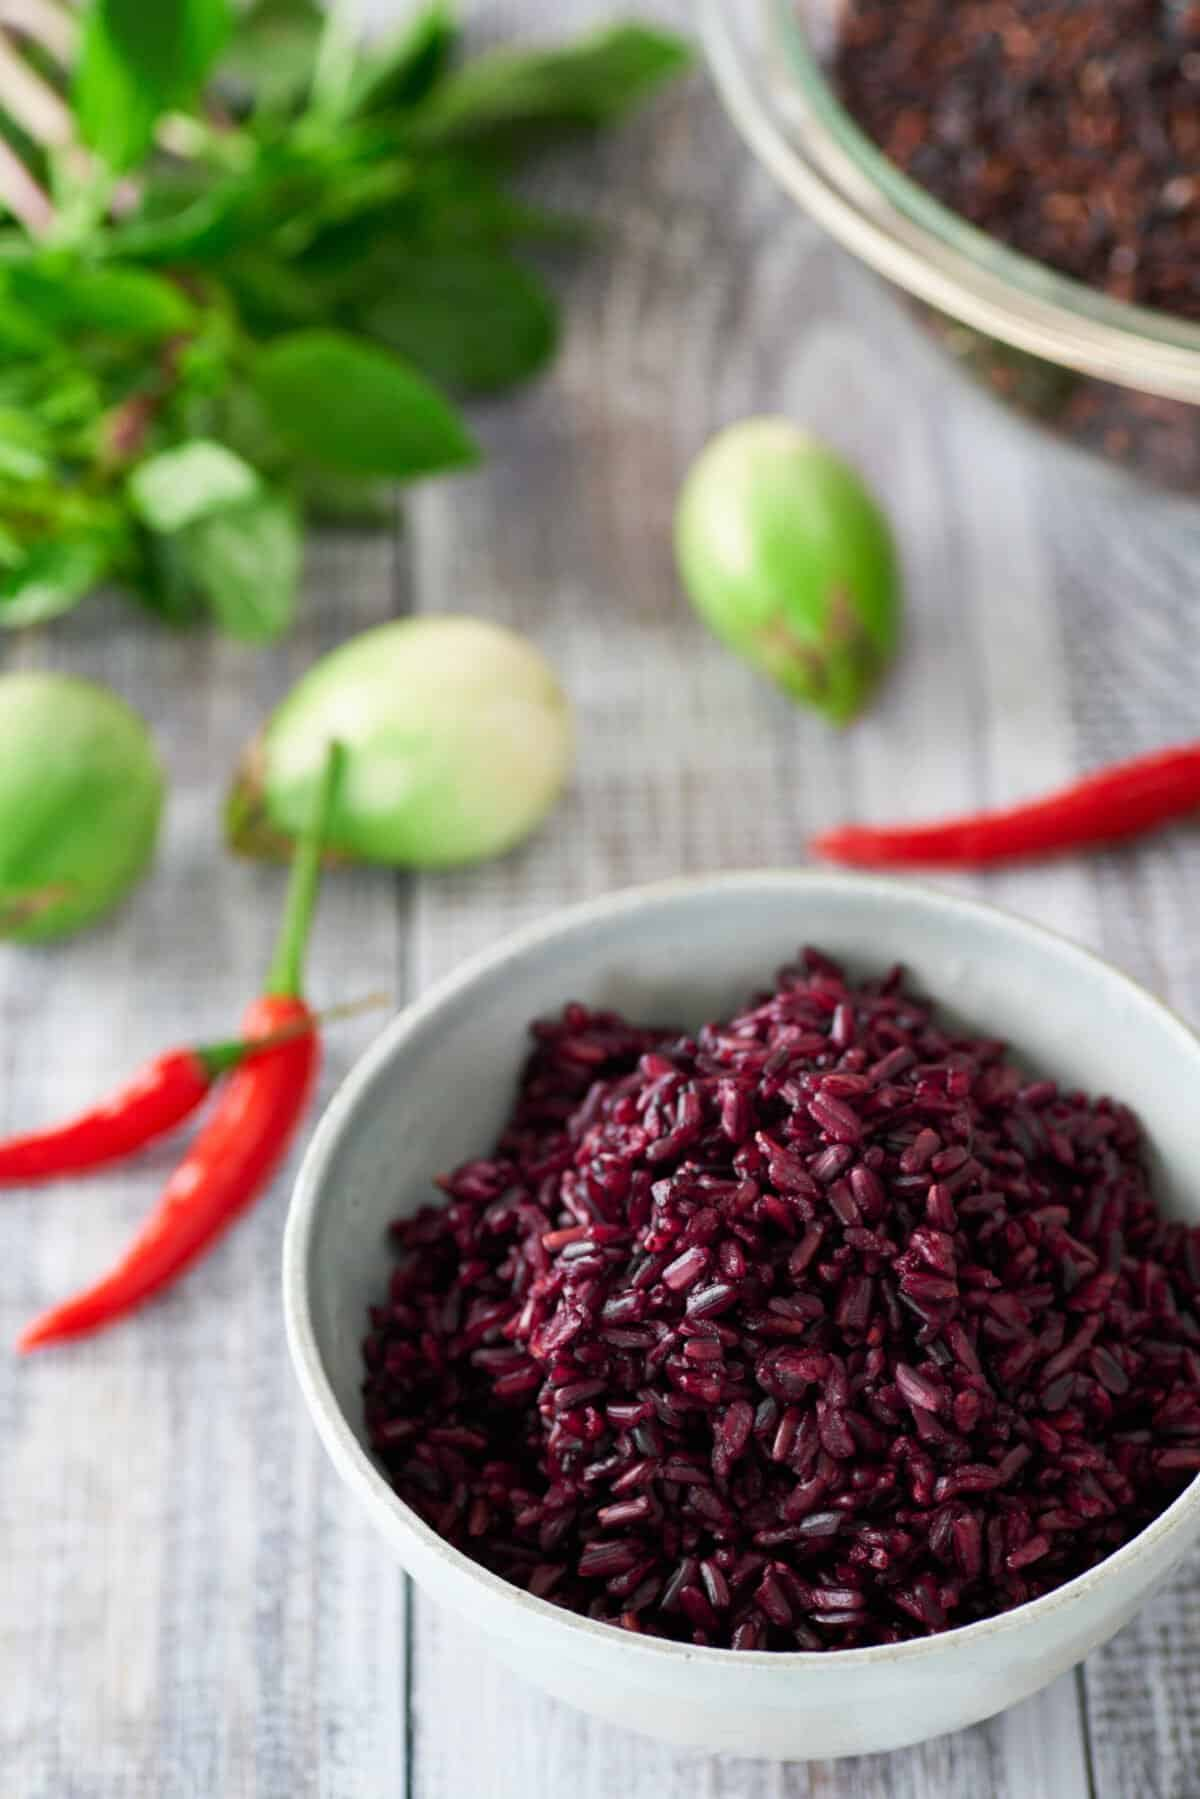 Riceberry is a wholegrain rice that's loaded with nutrients and yet it cooks up just like white rice.